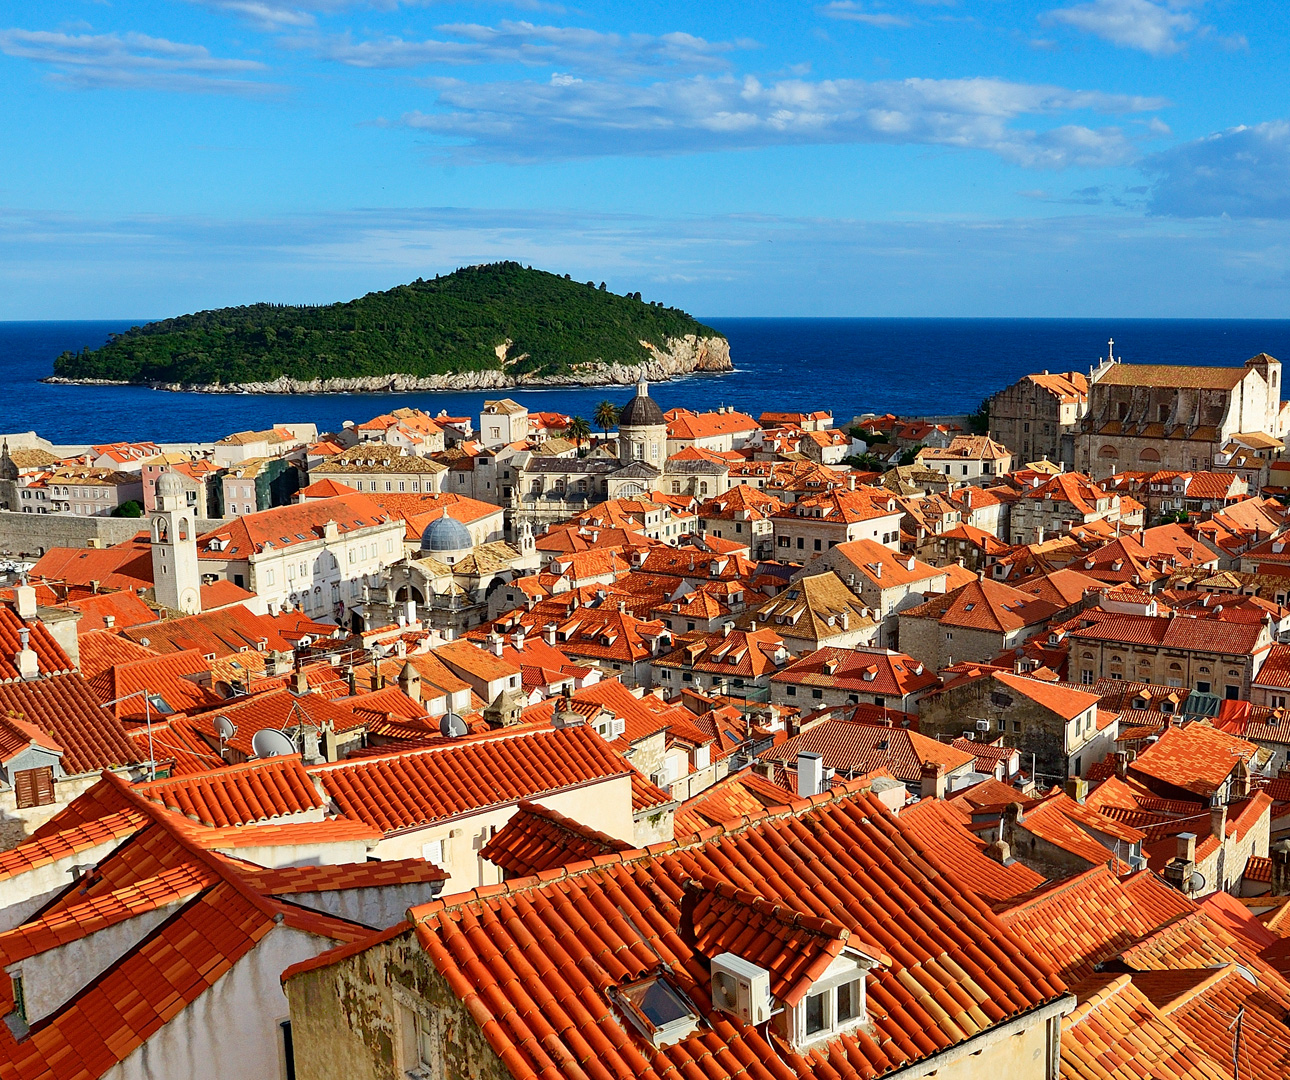 Explore the medieval old town of Dubrovnik with Insight Vacations